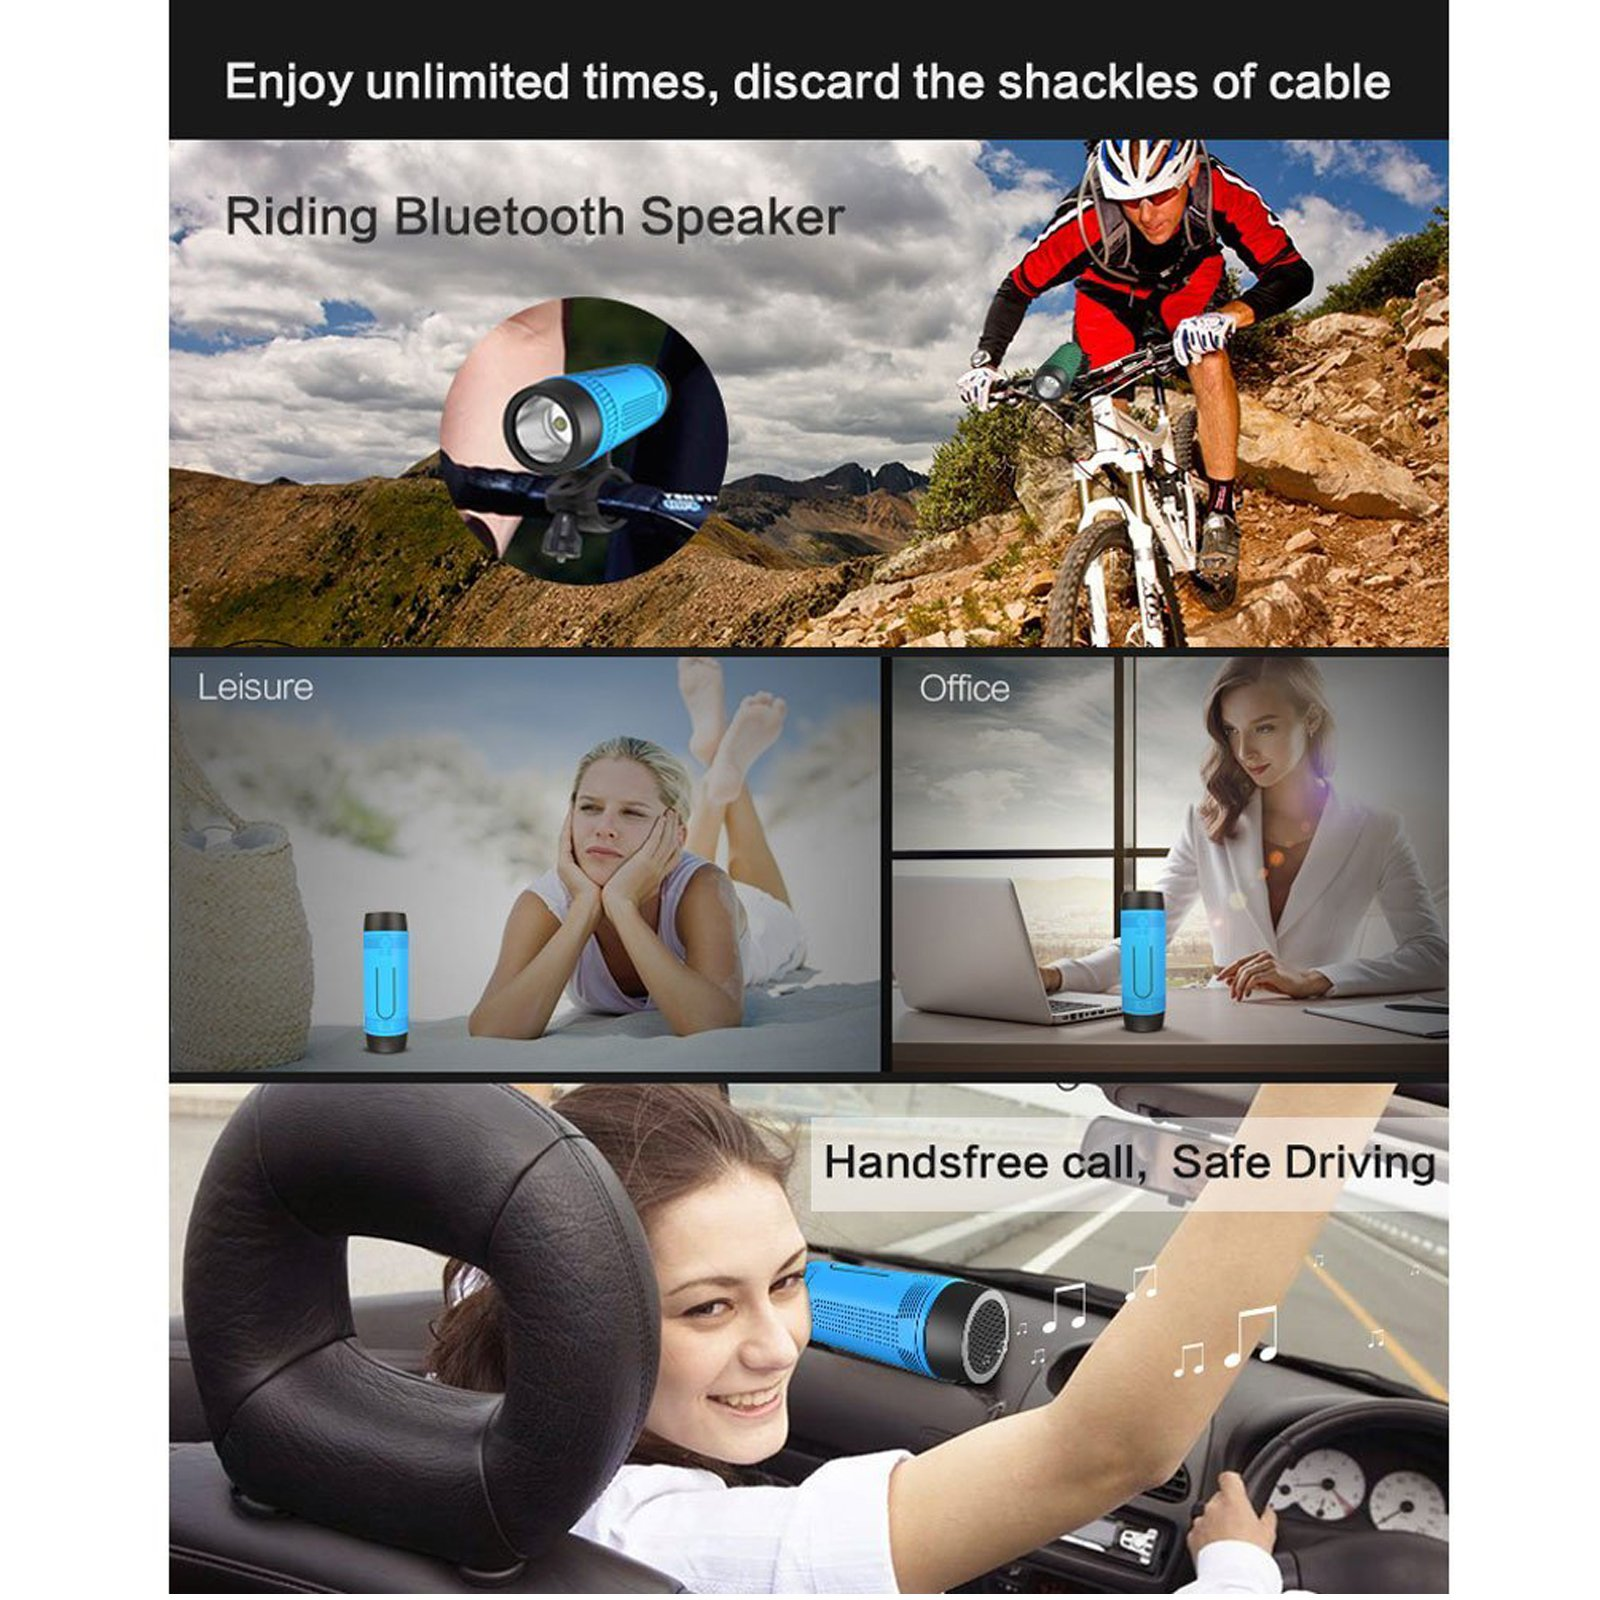 Portable Multifuctional Wireless Bluetooth Speaker 4000mAh Rechargeable Power Bank 3 Mode Emergency Flashlight Handsfree Answering Phone Call TF Card Music Player Mounting Mracket Screw Hole (Blue) by Teastar (Image #2)